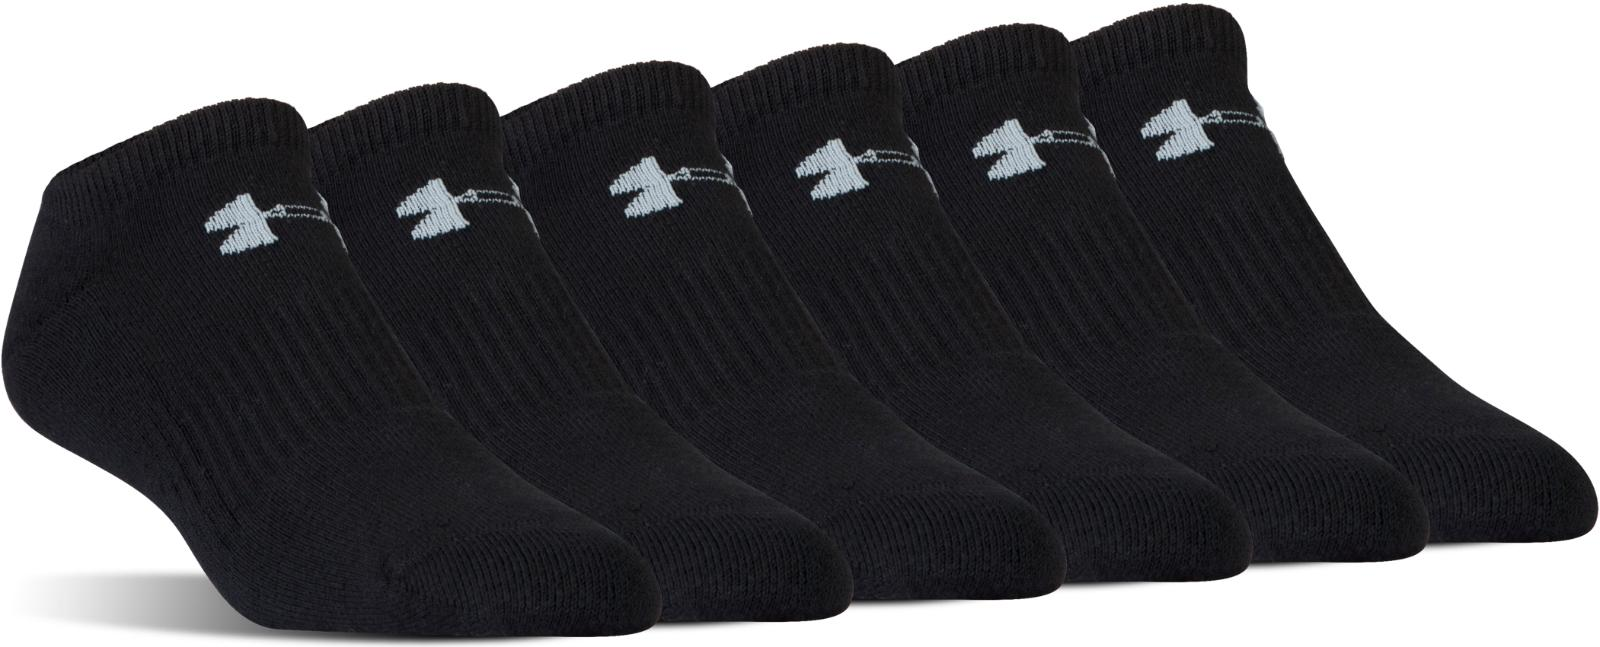 Under Armour UA Charged Cotton® 2.0 No Show Socks 6-Pack